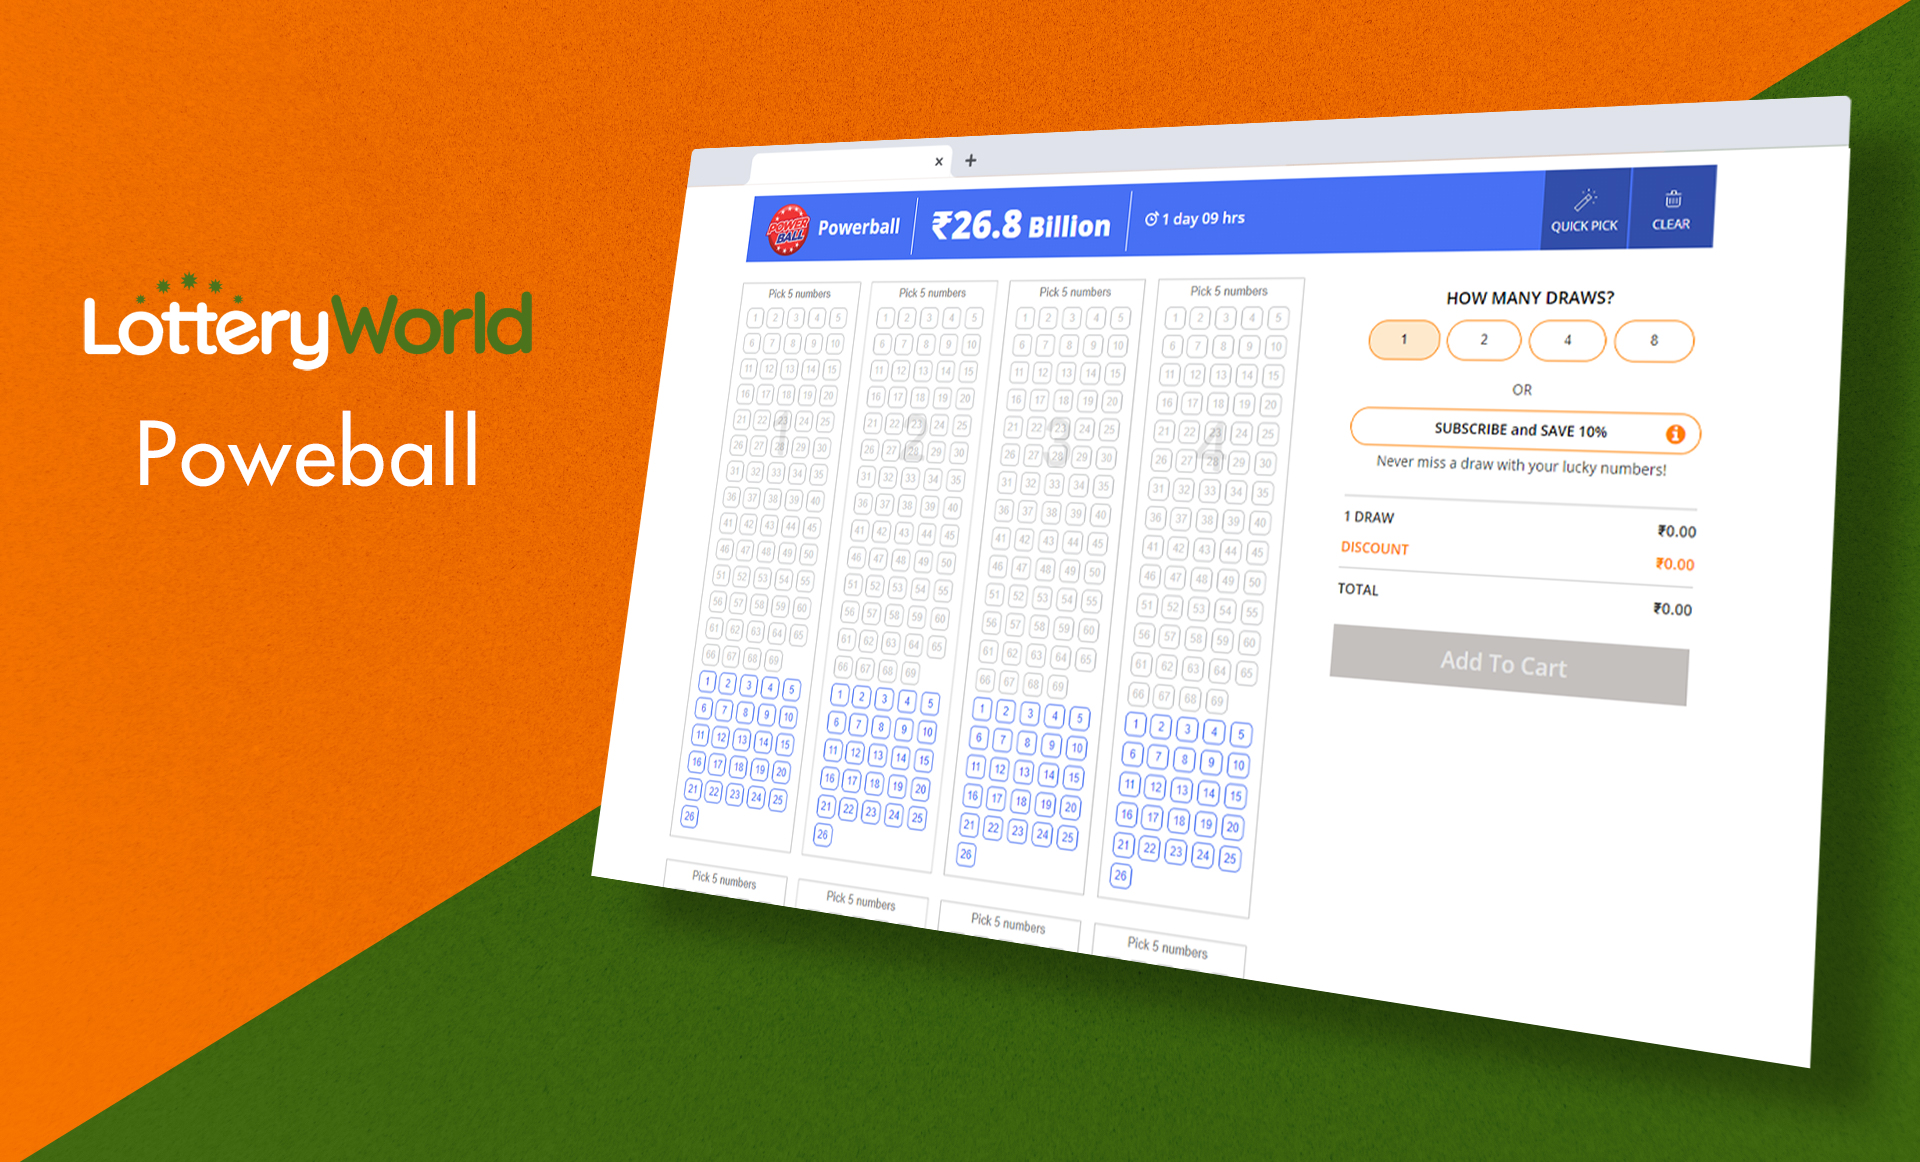 Powerball is one of the most famous lotteries based in the USA.